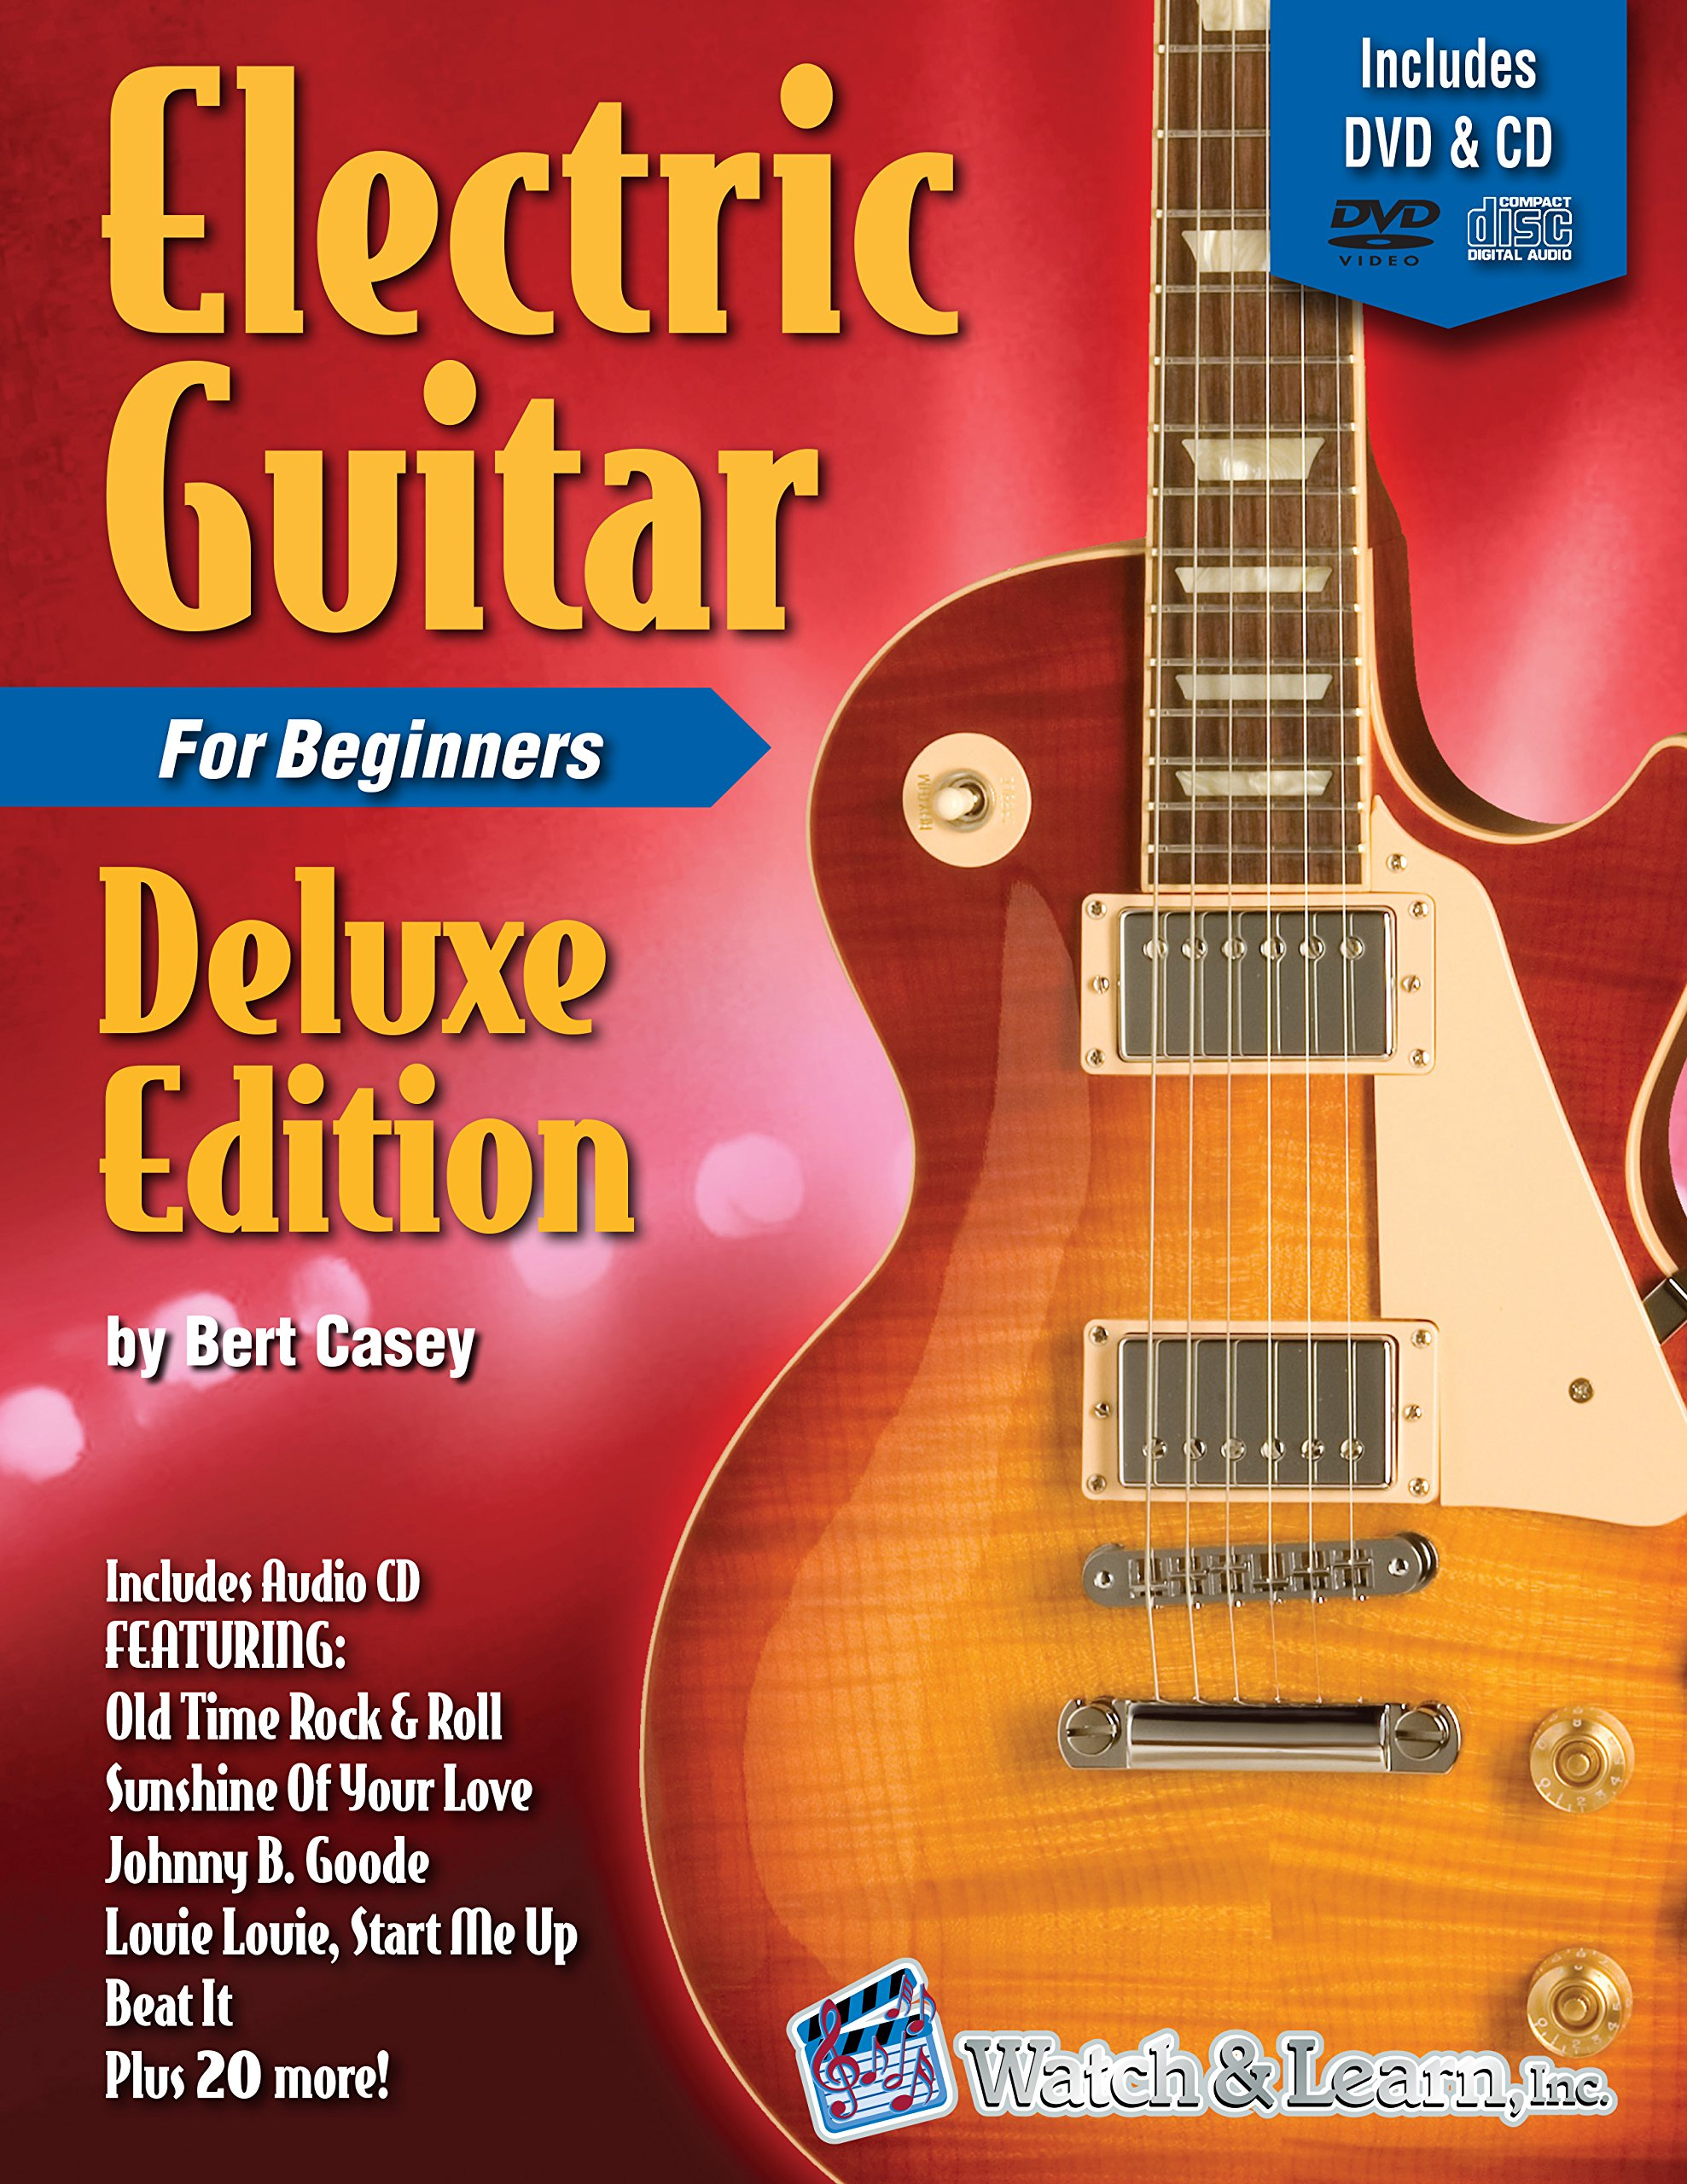 Electric Guitar Primer Book for Beginners Deluxe Edition with DVD & CD